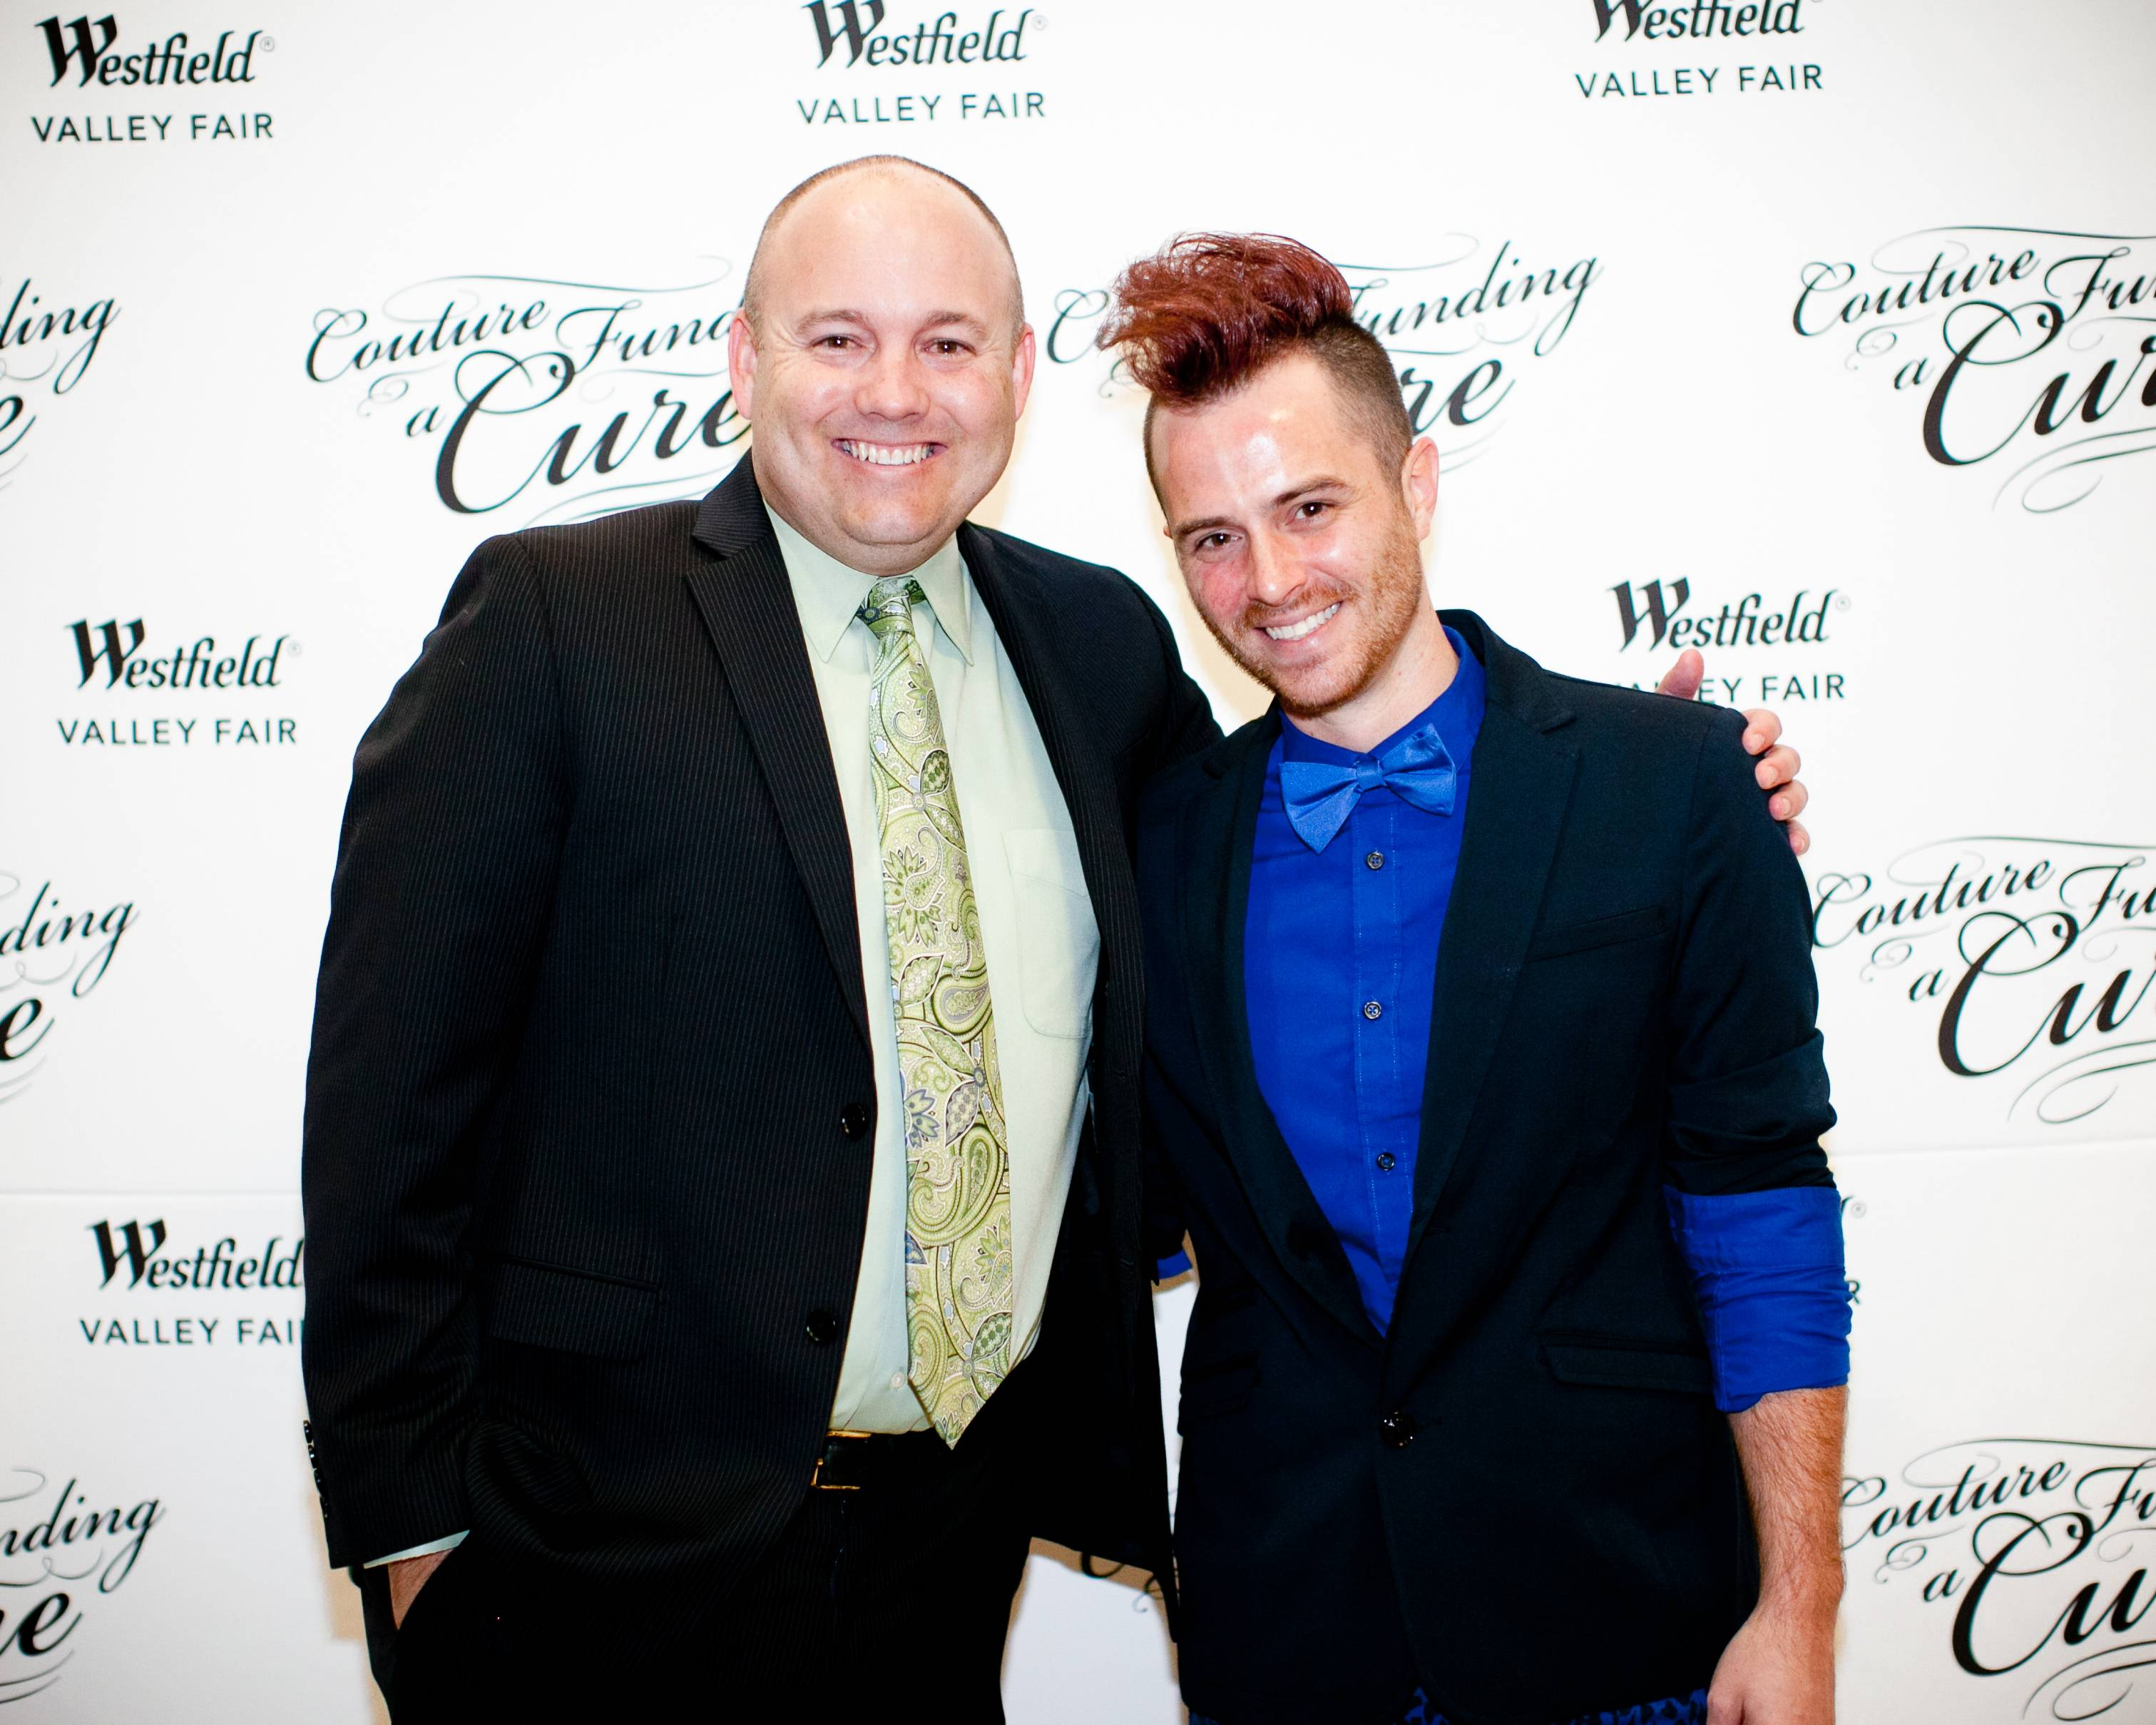 Gavin Farnam, Westfield Valley Fair Senior General Manager, and Anthony Ryan Auld, Project Runway All Star designer pose together on red carpet.credit Moanalani Jeffery